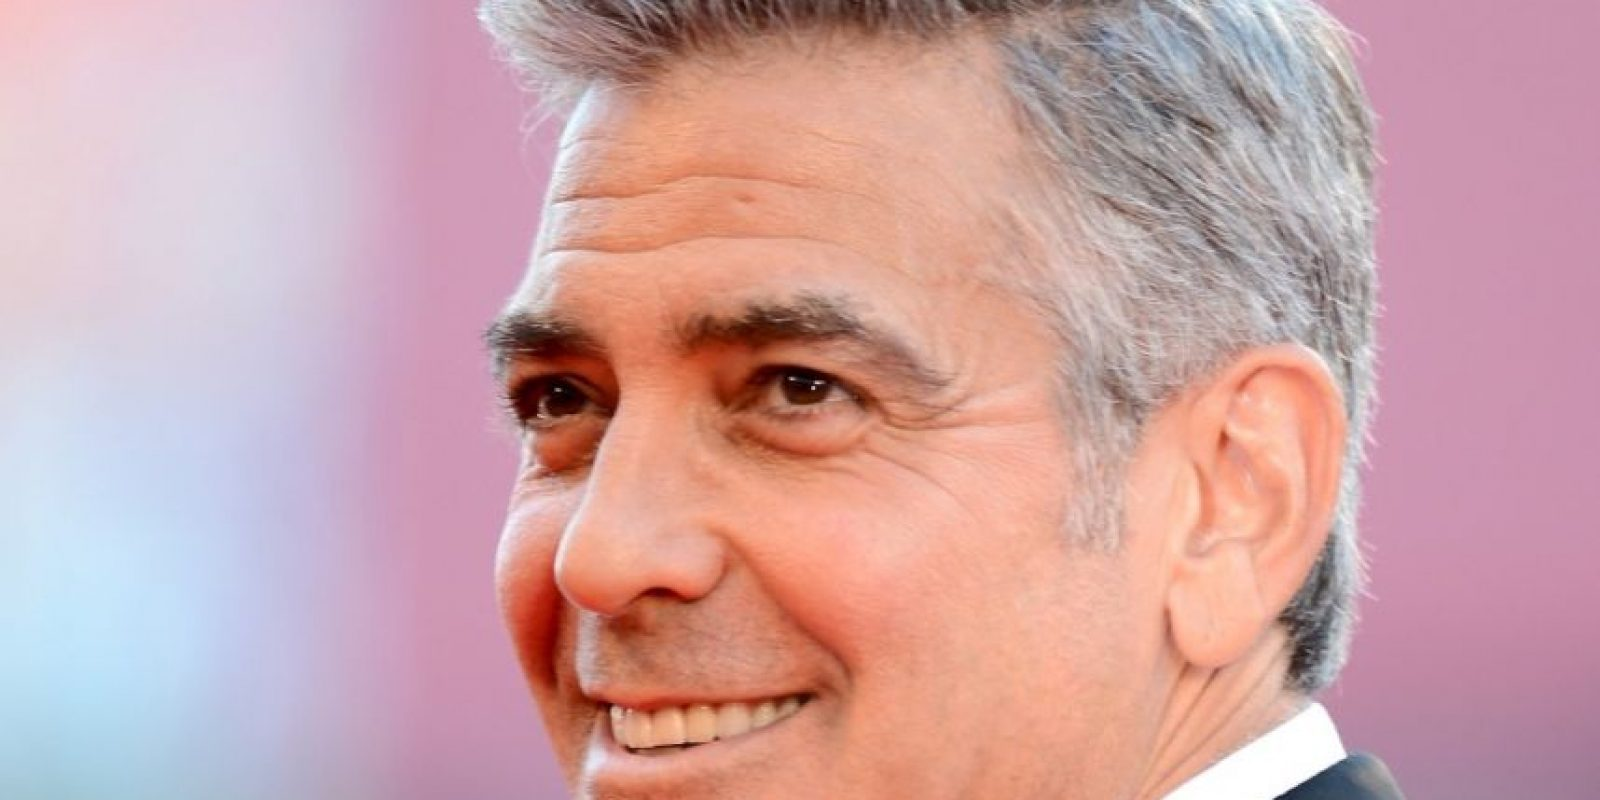 El recién casado, George Clooney Foto: Getty Images